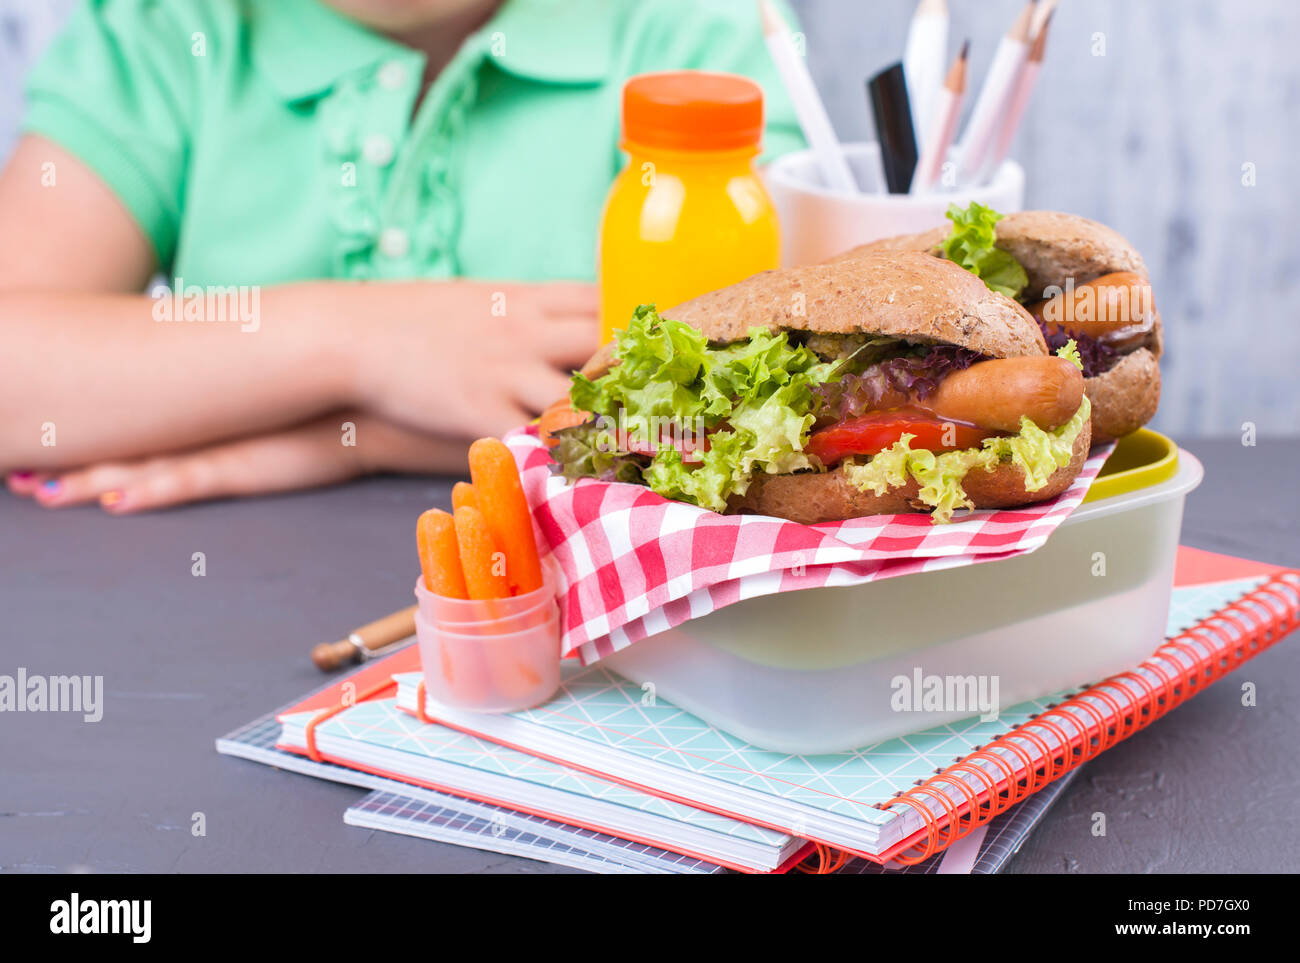 child eating hot dog stock photos child eating hot dog stock images page 2 alamy. Black Bedroom Furniture Sets. Home Design Ideas